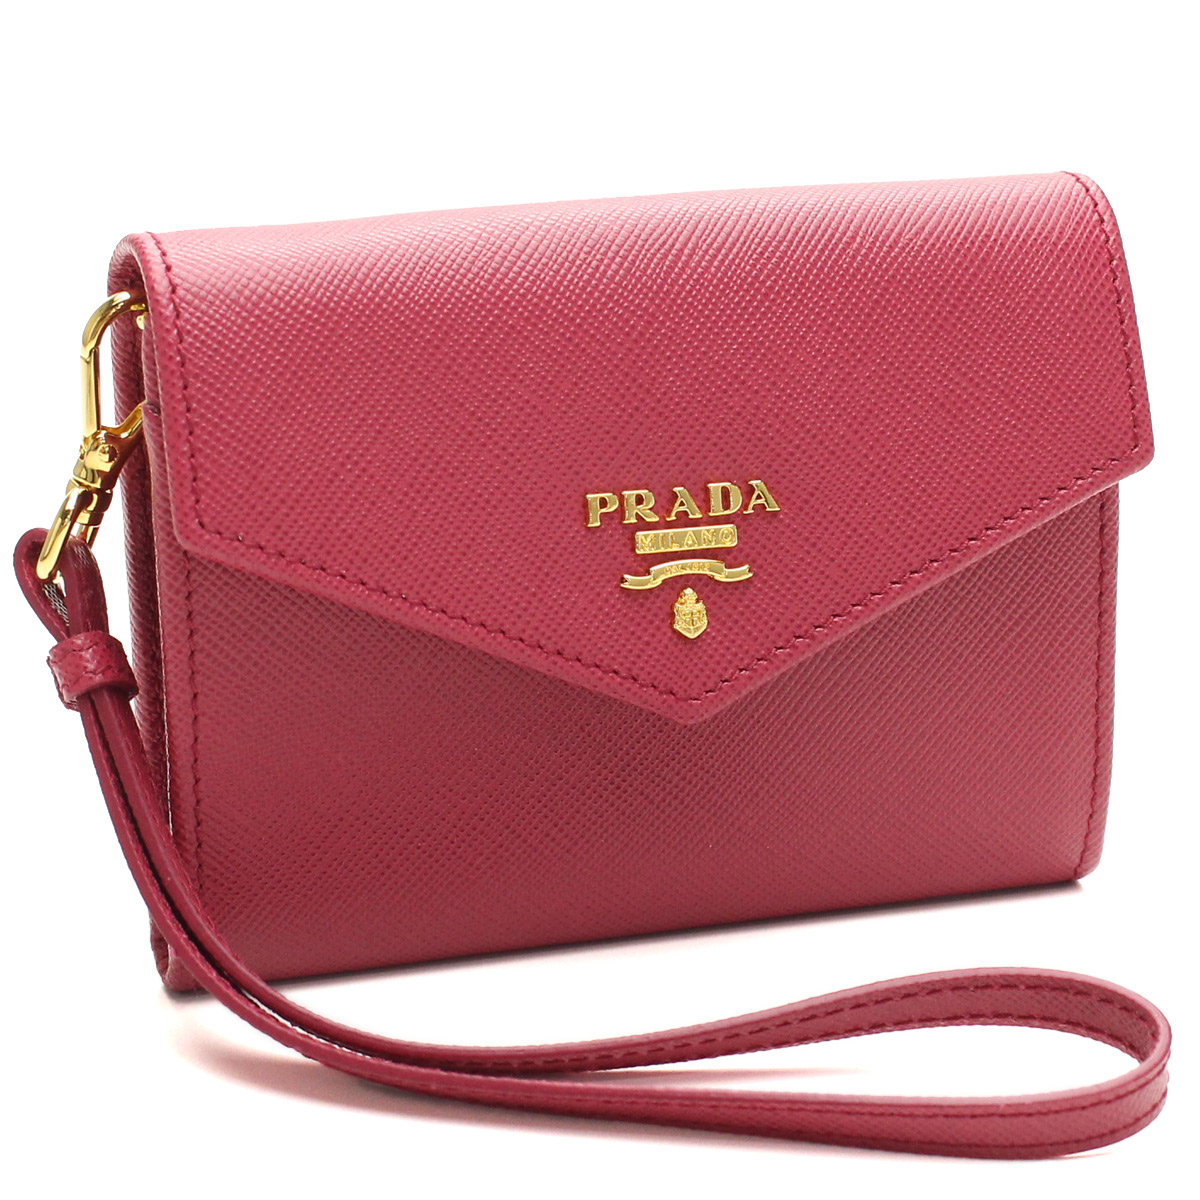 Bighit The total brand wholesale | Rakuten Global Market: Prada ...